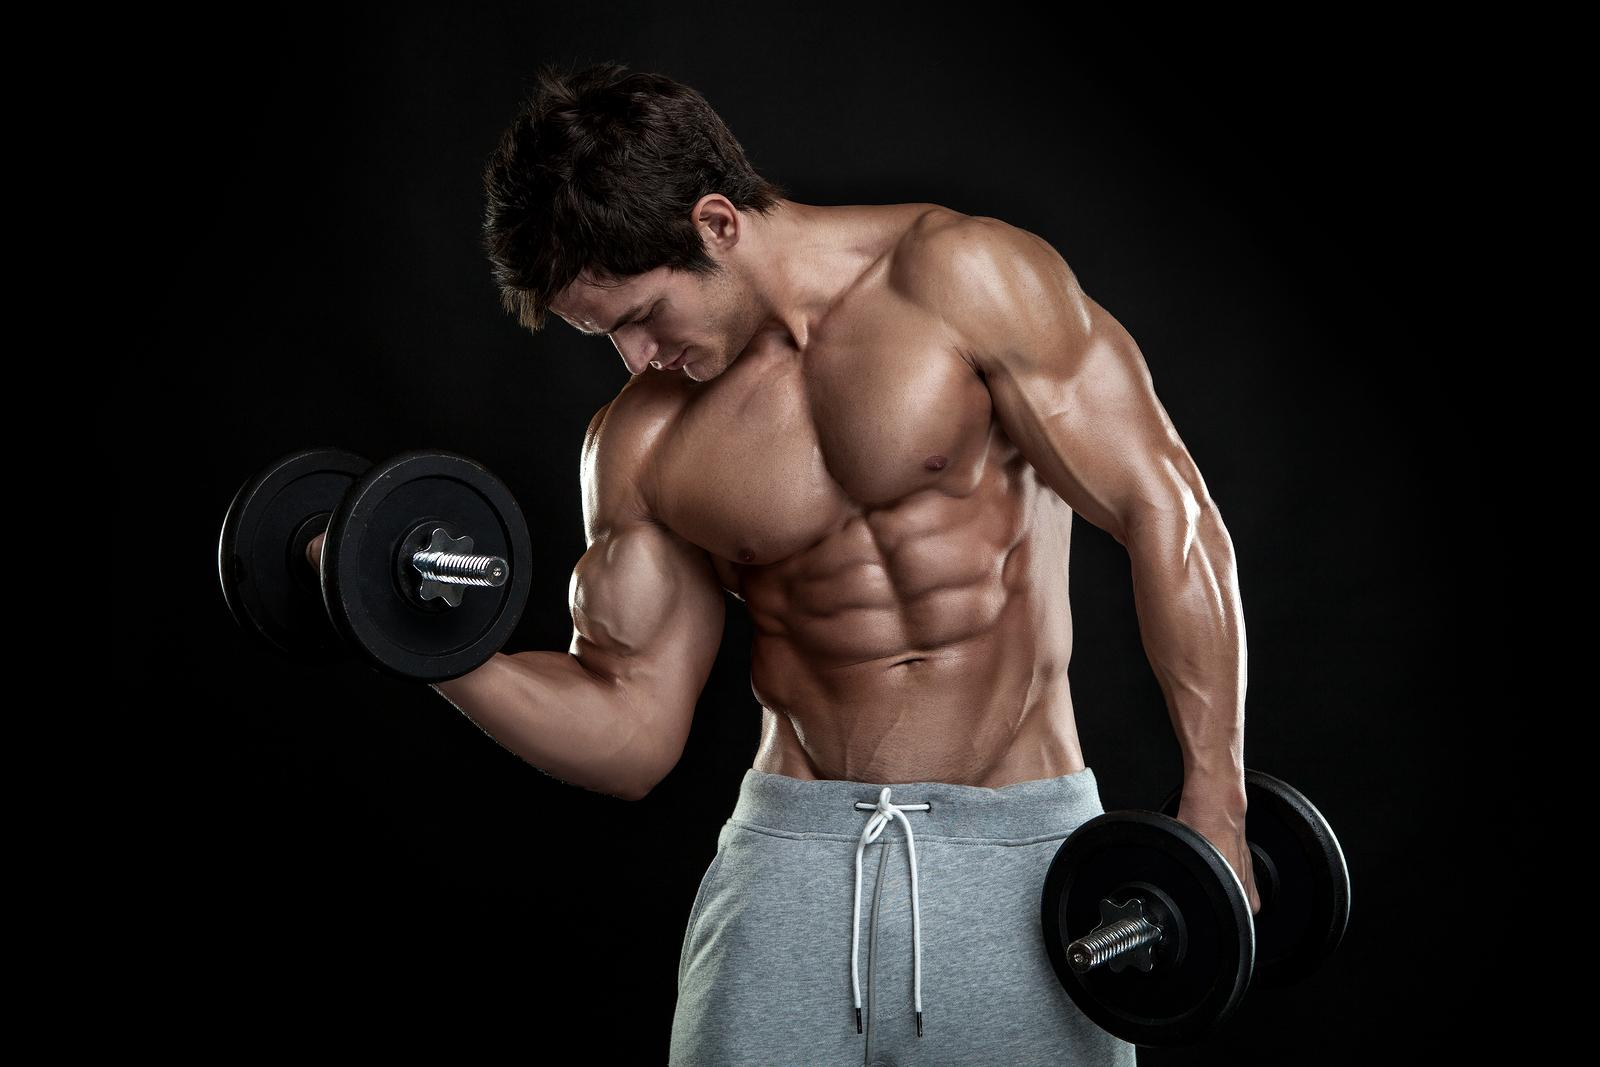 body-Muscles-With-Dumbbell-Exercises.jpg